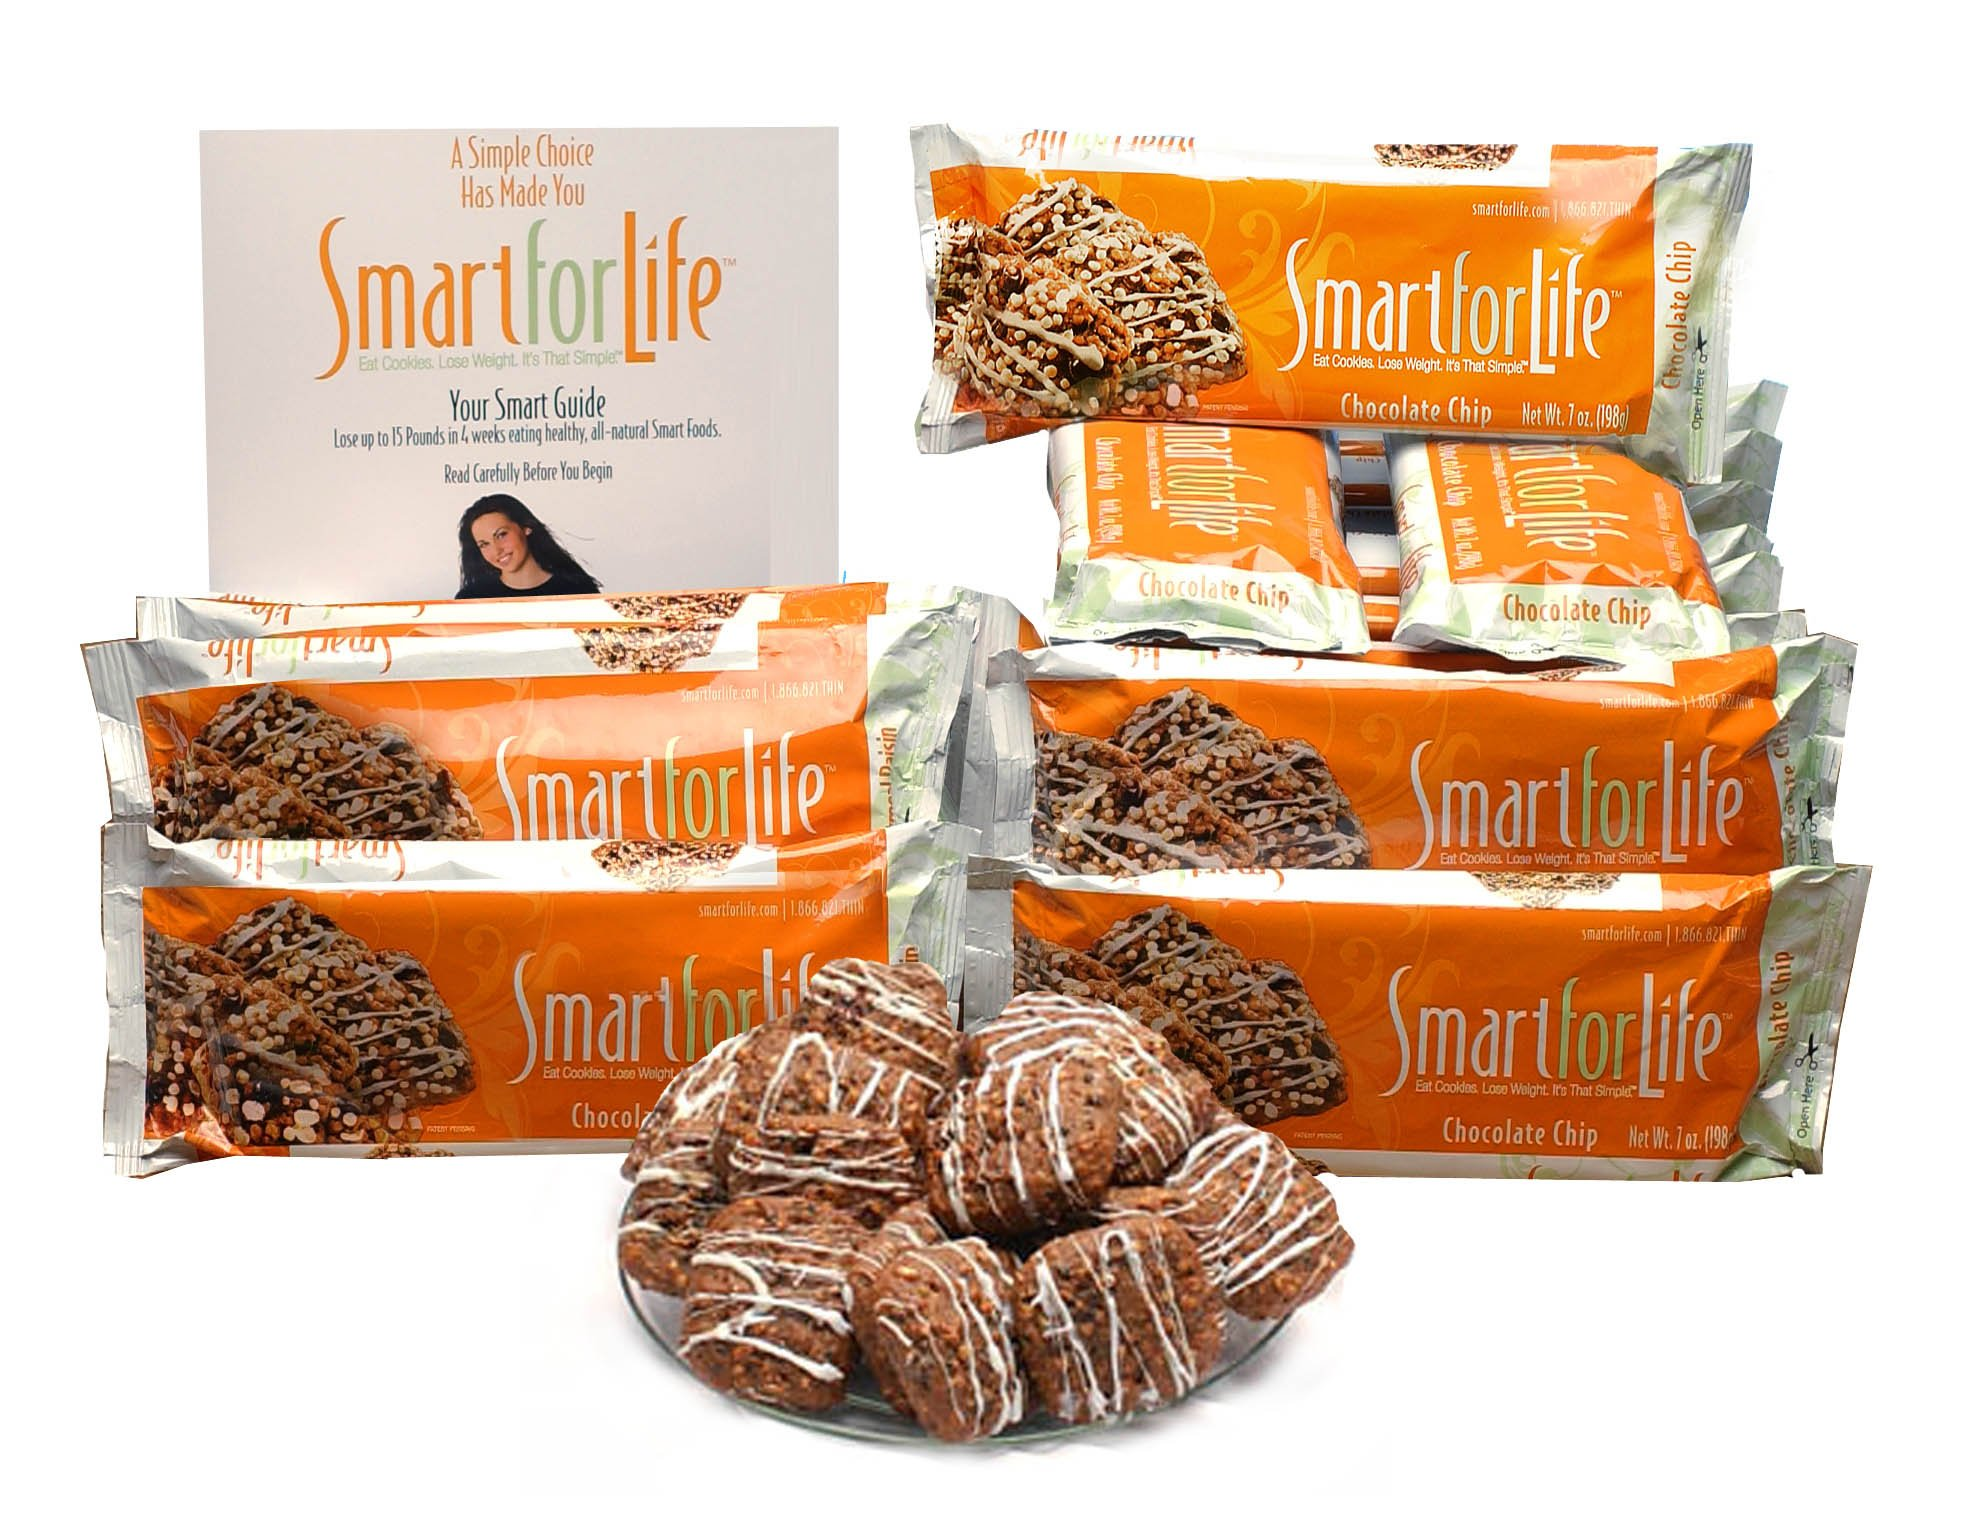 Smart for Life Chocolate Chip Diet Cookies, 14 day Meal Replacement - Pack of 14, (84 ct)